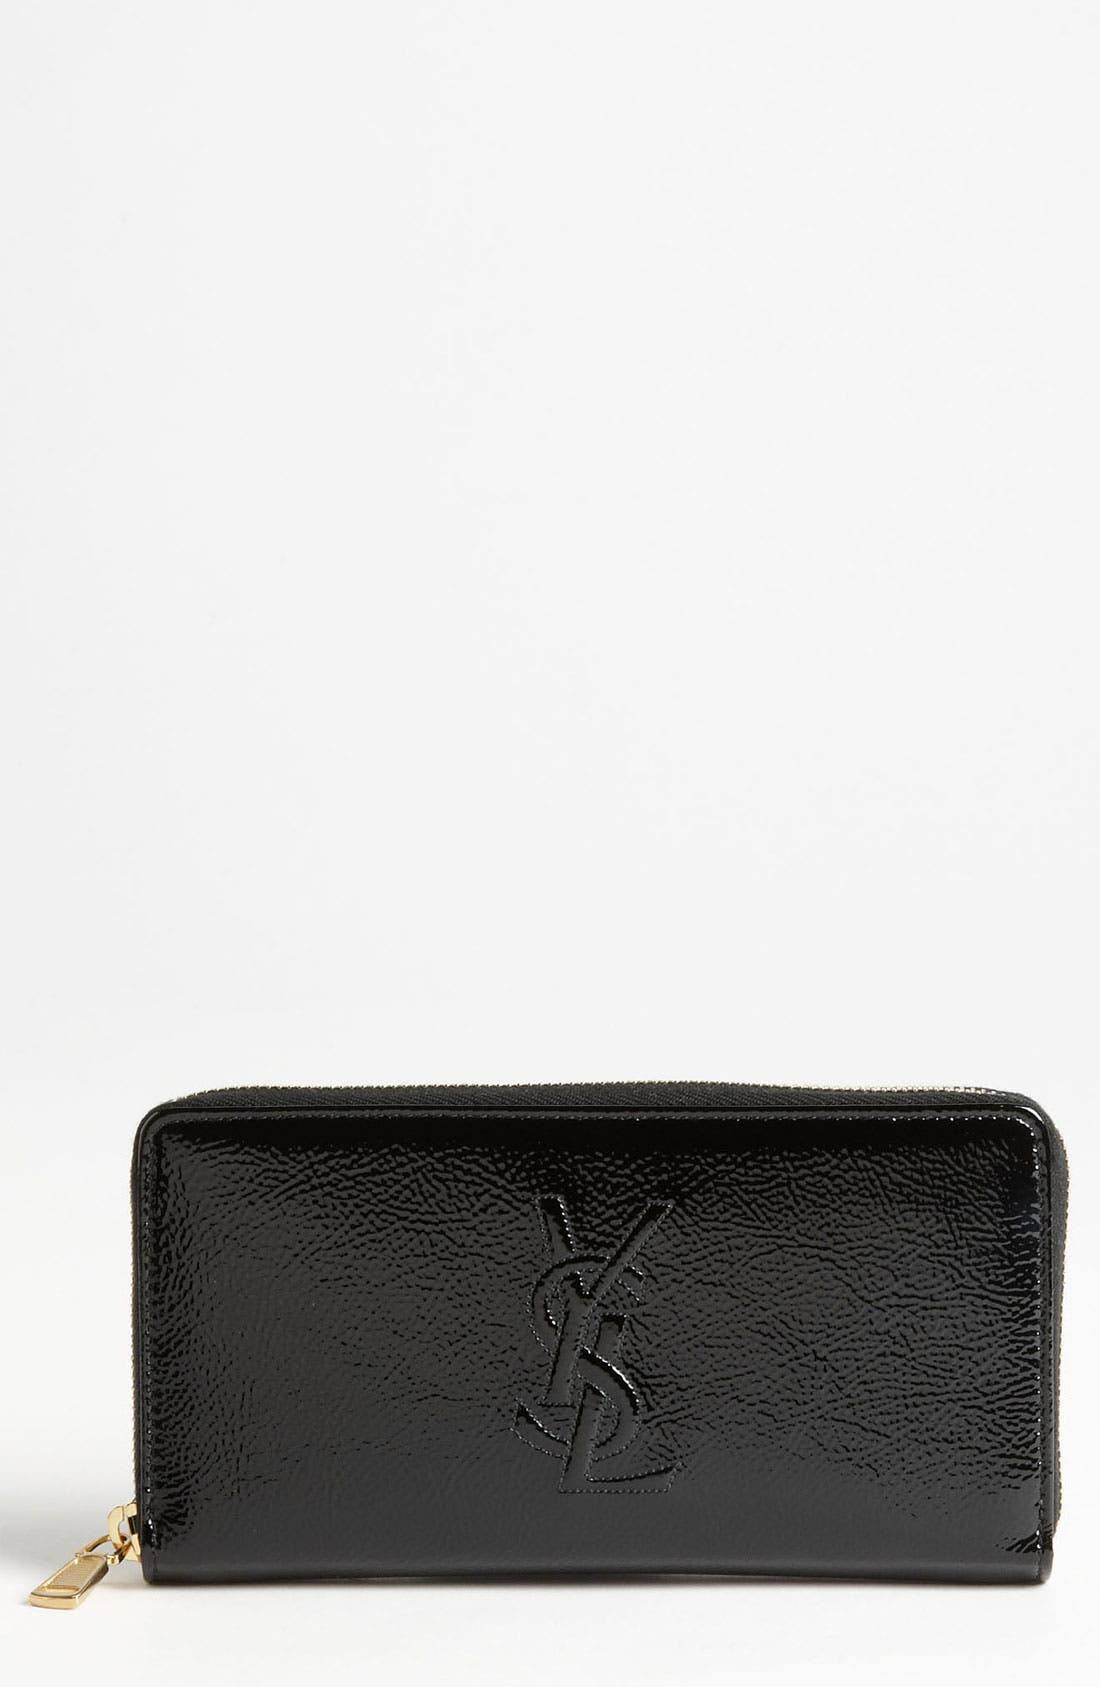 Main Image - Saint Laurent 'Belle de Jour' Leather Wallet